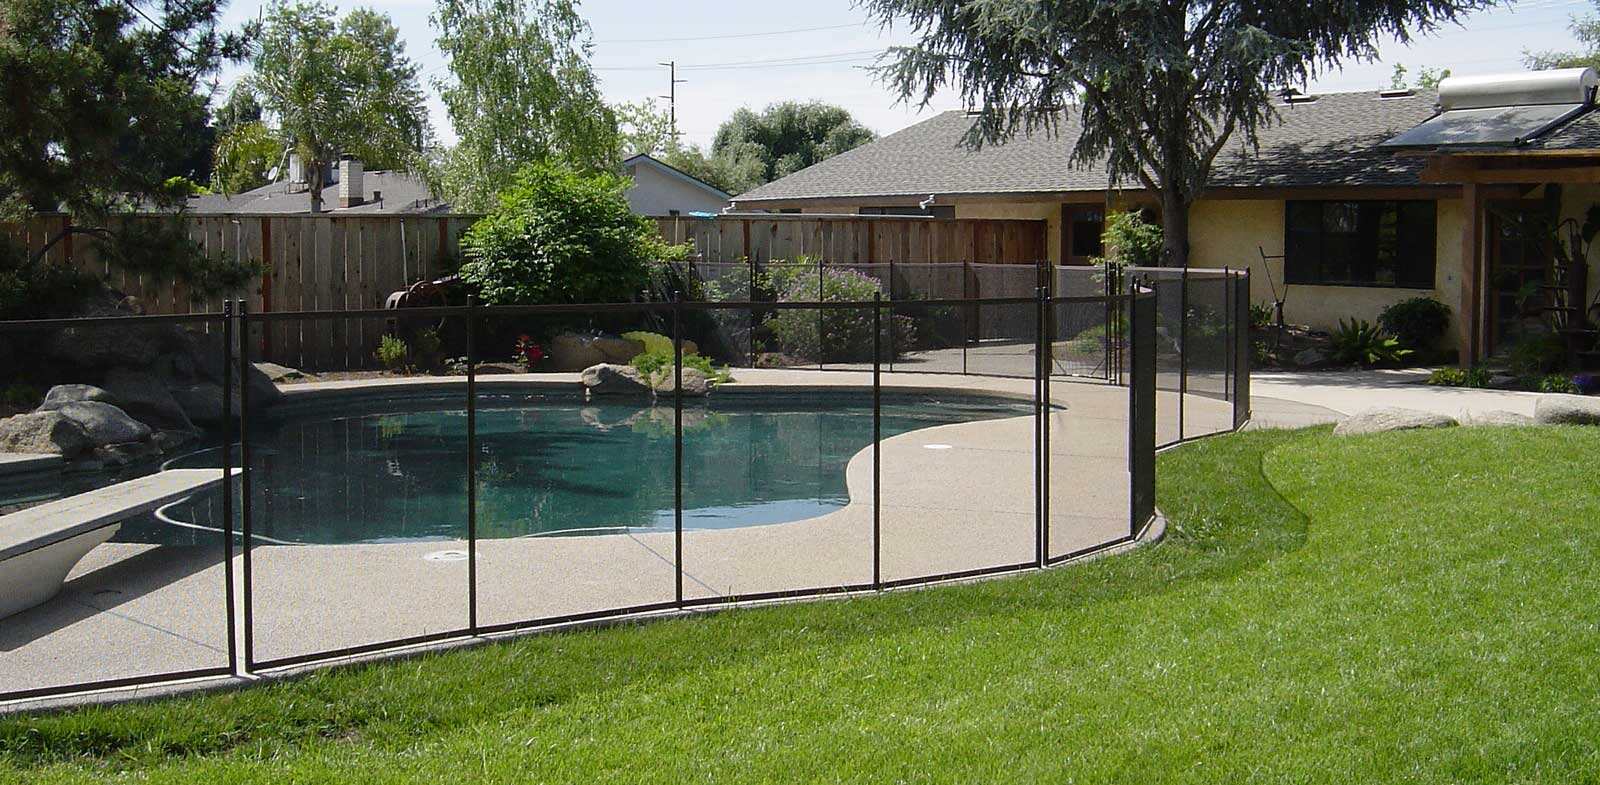 Pool Fence Gate What To Look For Guardian Pool Fence System